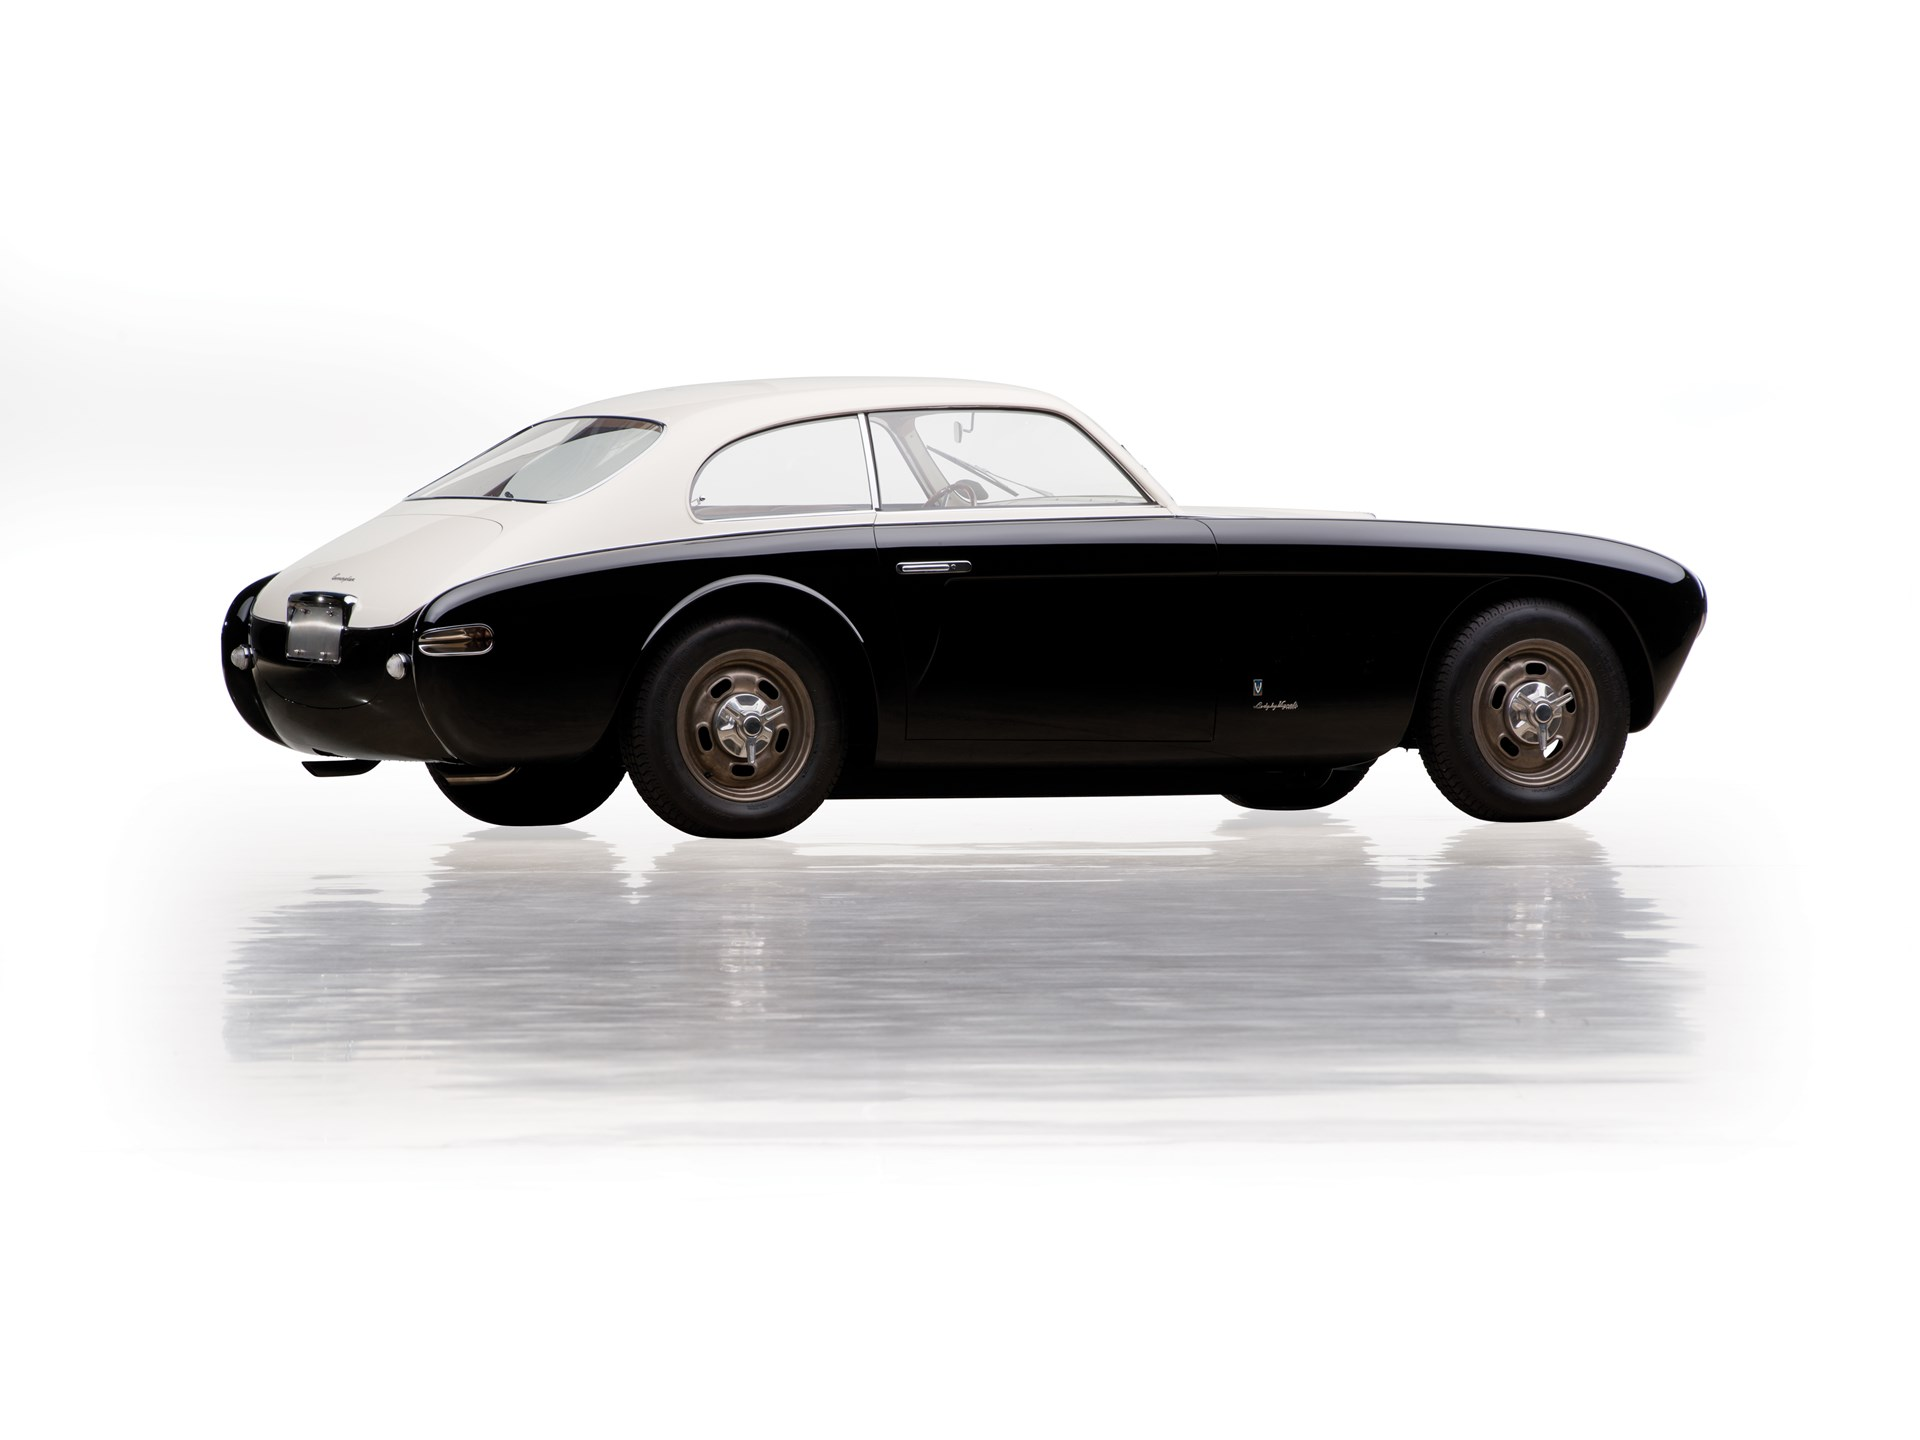 1953 Cunningham C3 Coupe by Vignale